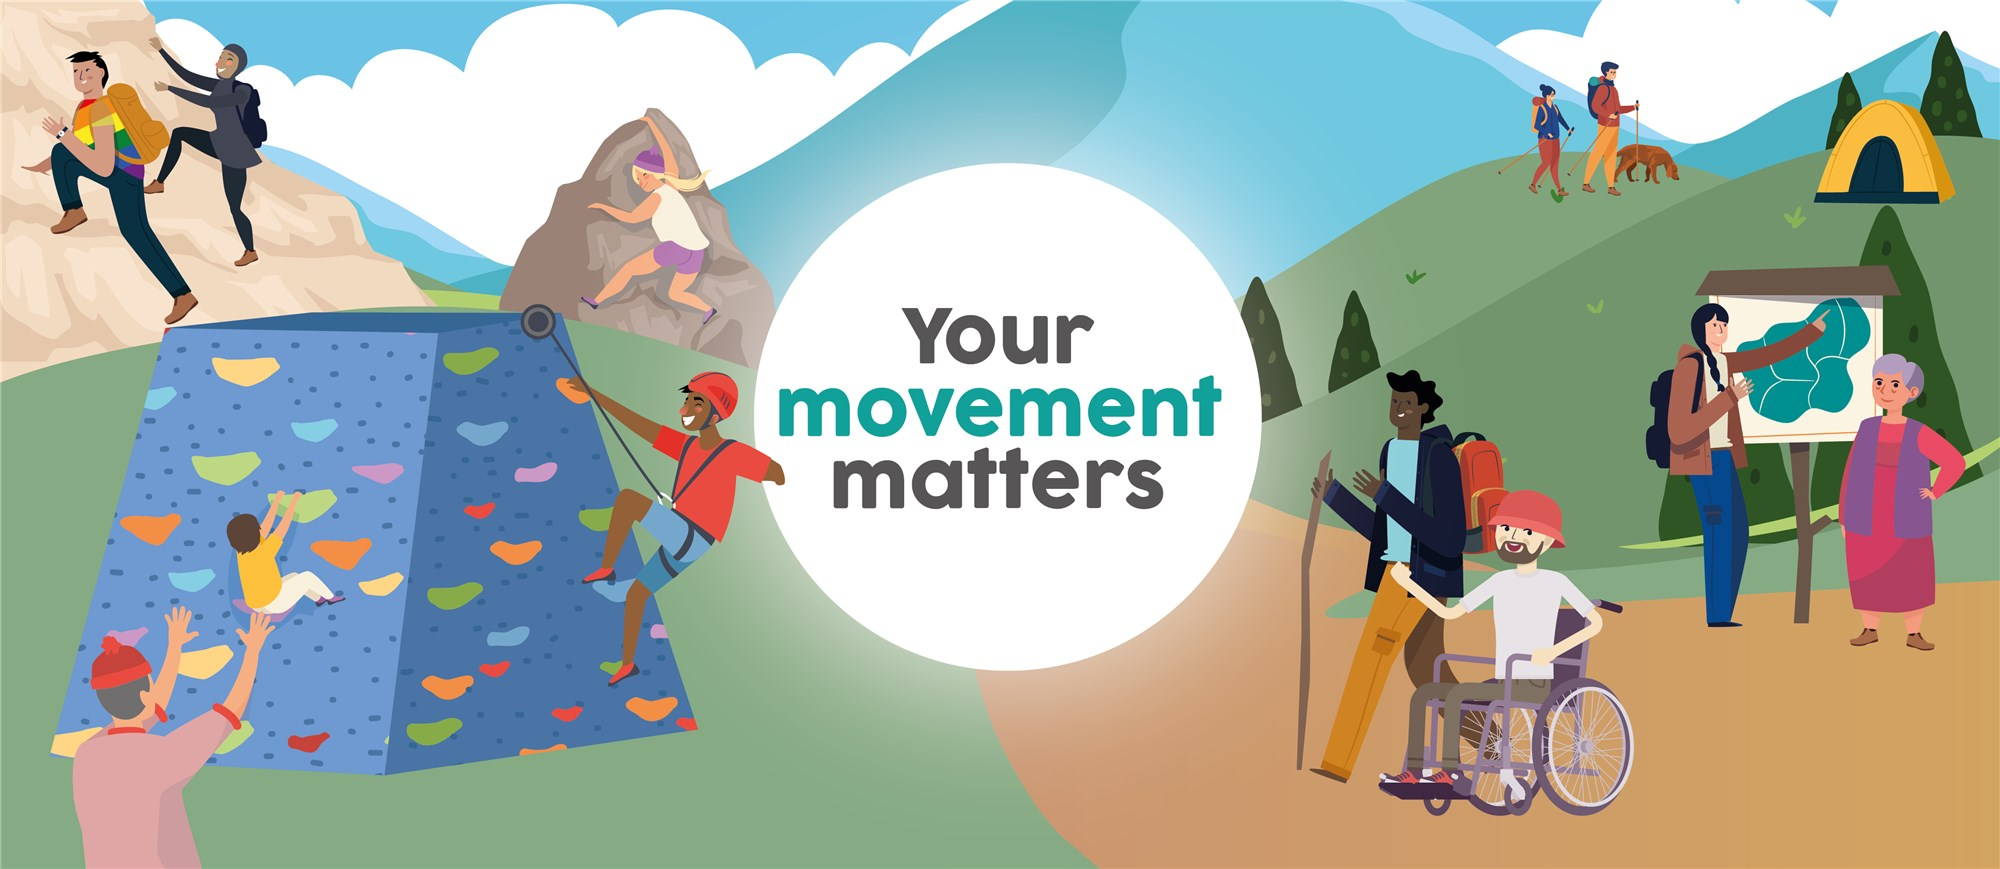 Your movement matters banner